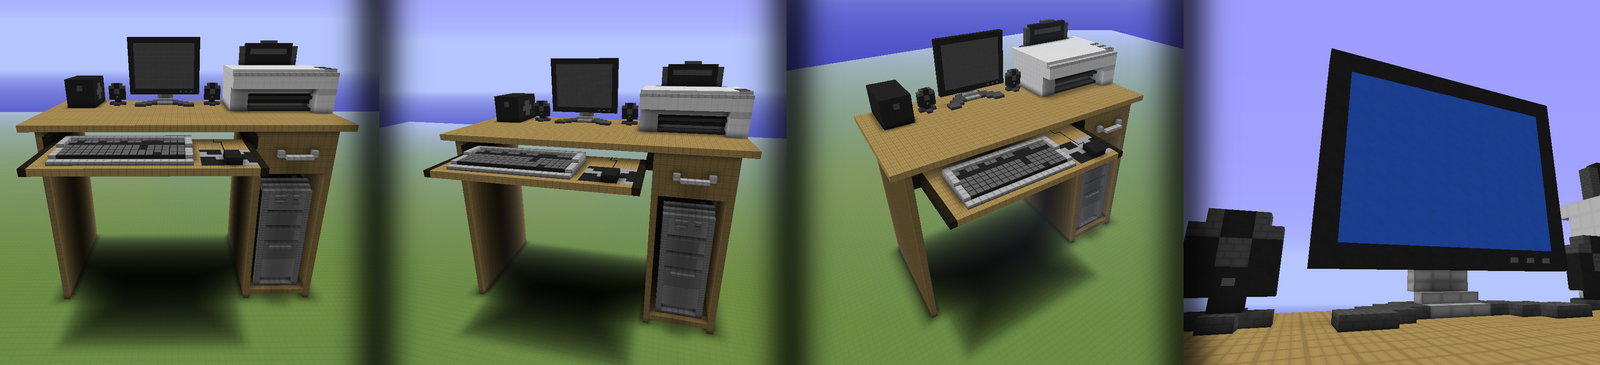 Minecraft Computer Desk by watermeloons